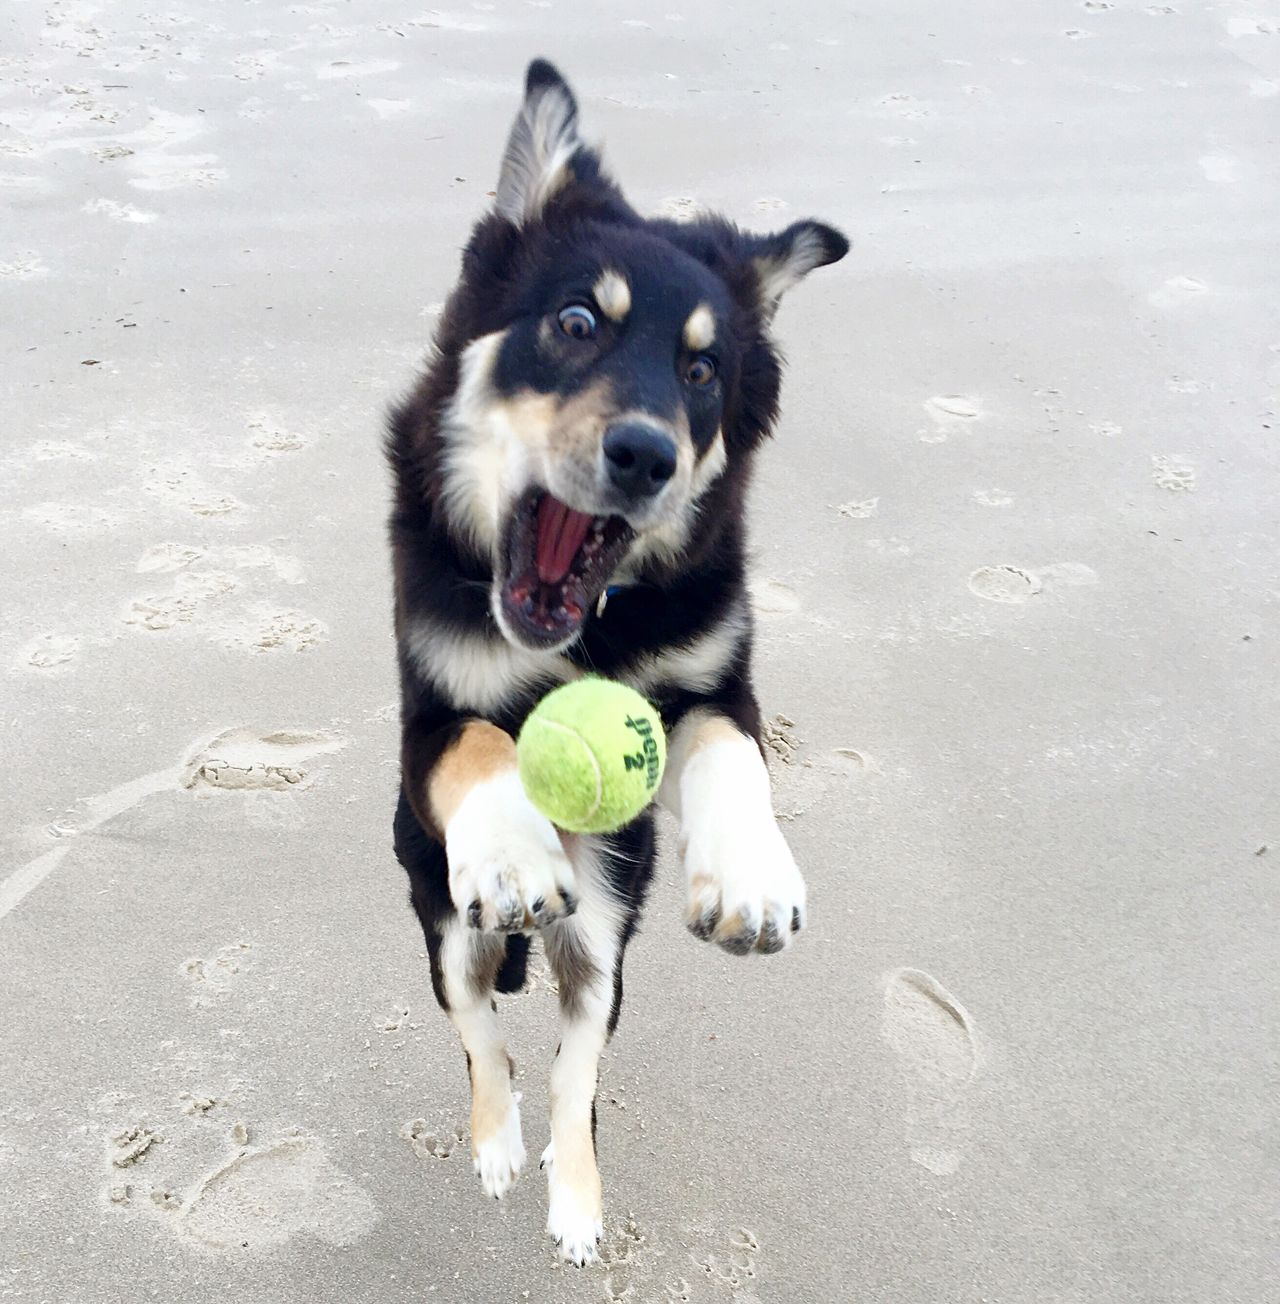 Dog Pets Domestic Animals Animal Themes Mammal One Animal Portrait Ball No People Day Outdoors Beach Nature Carrying In Mouth Stopmotion